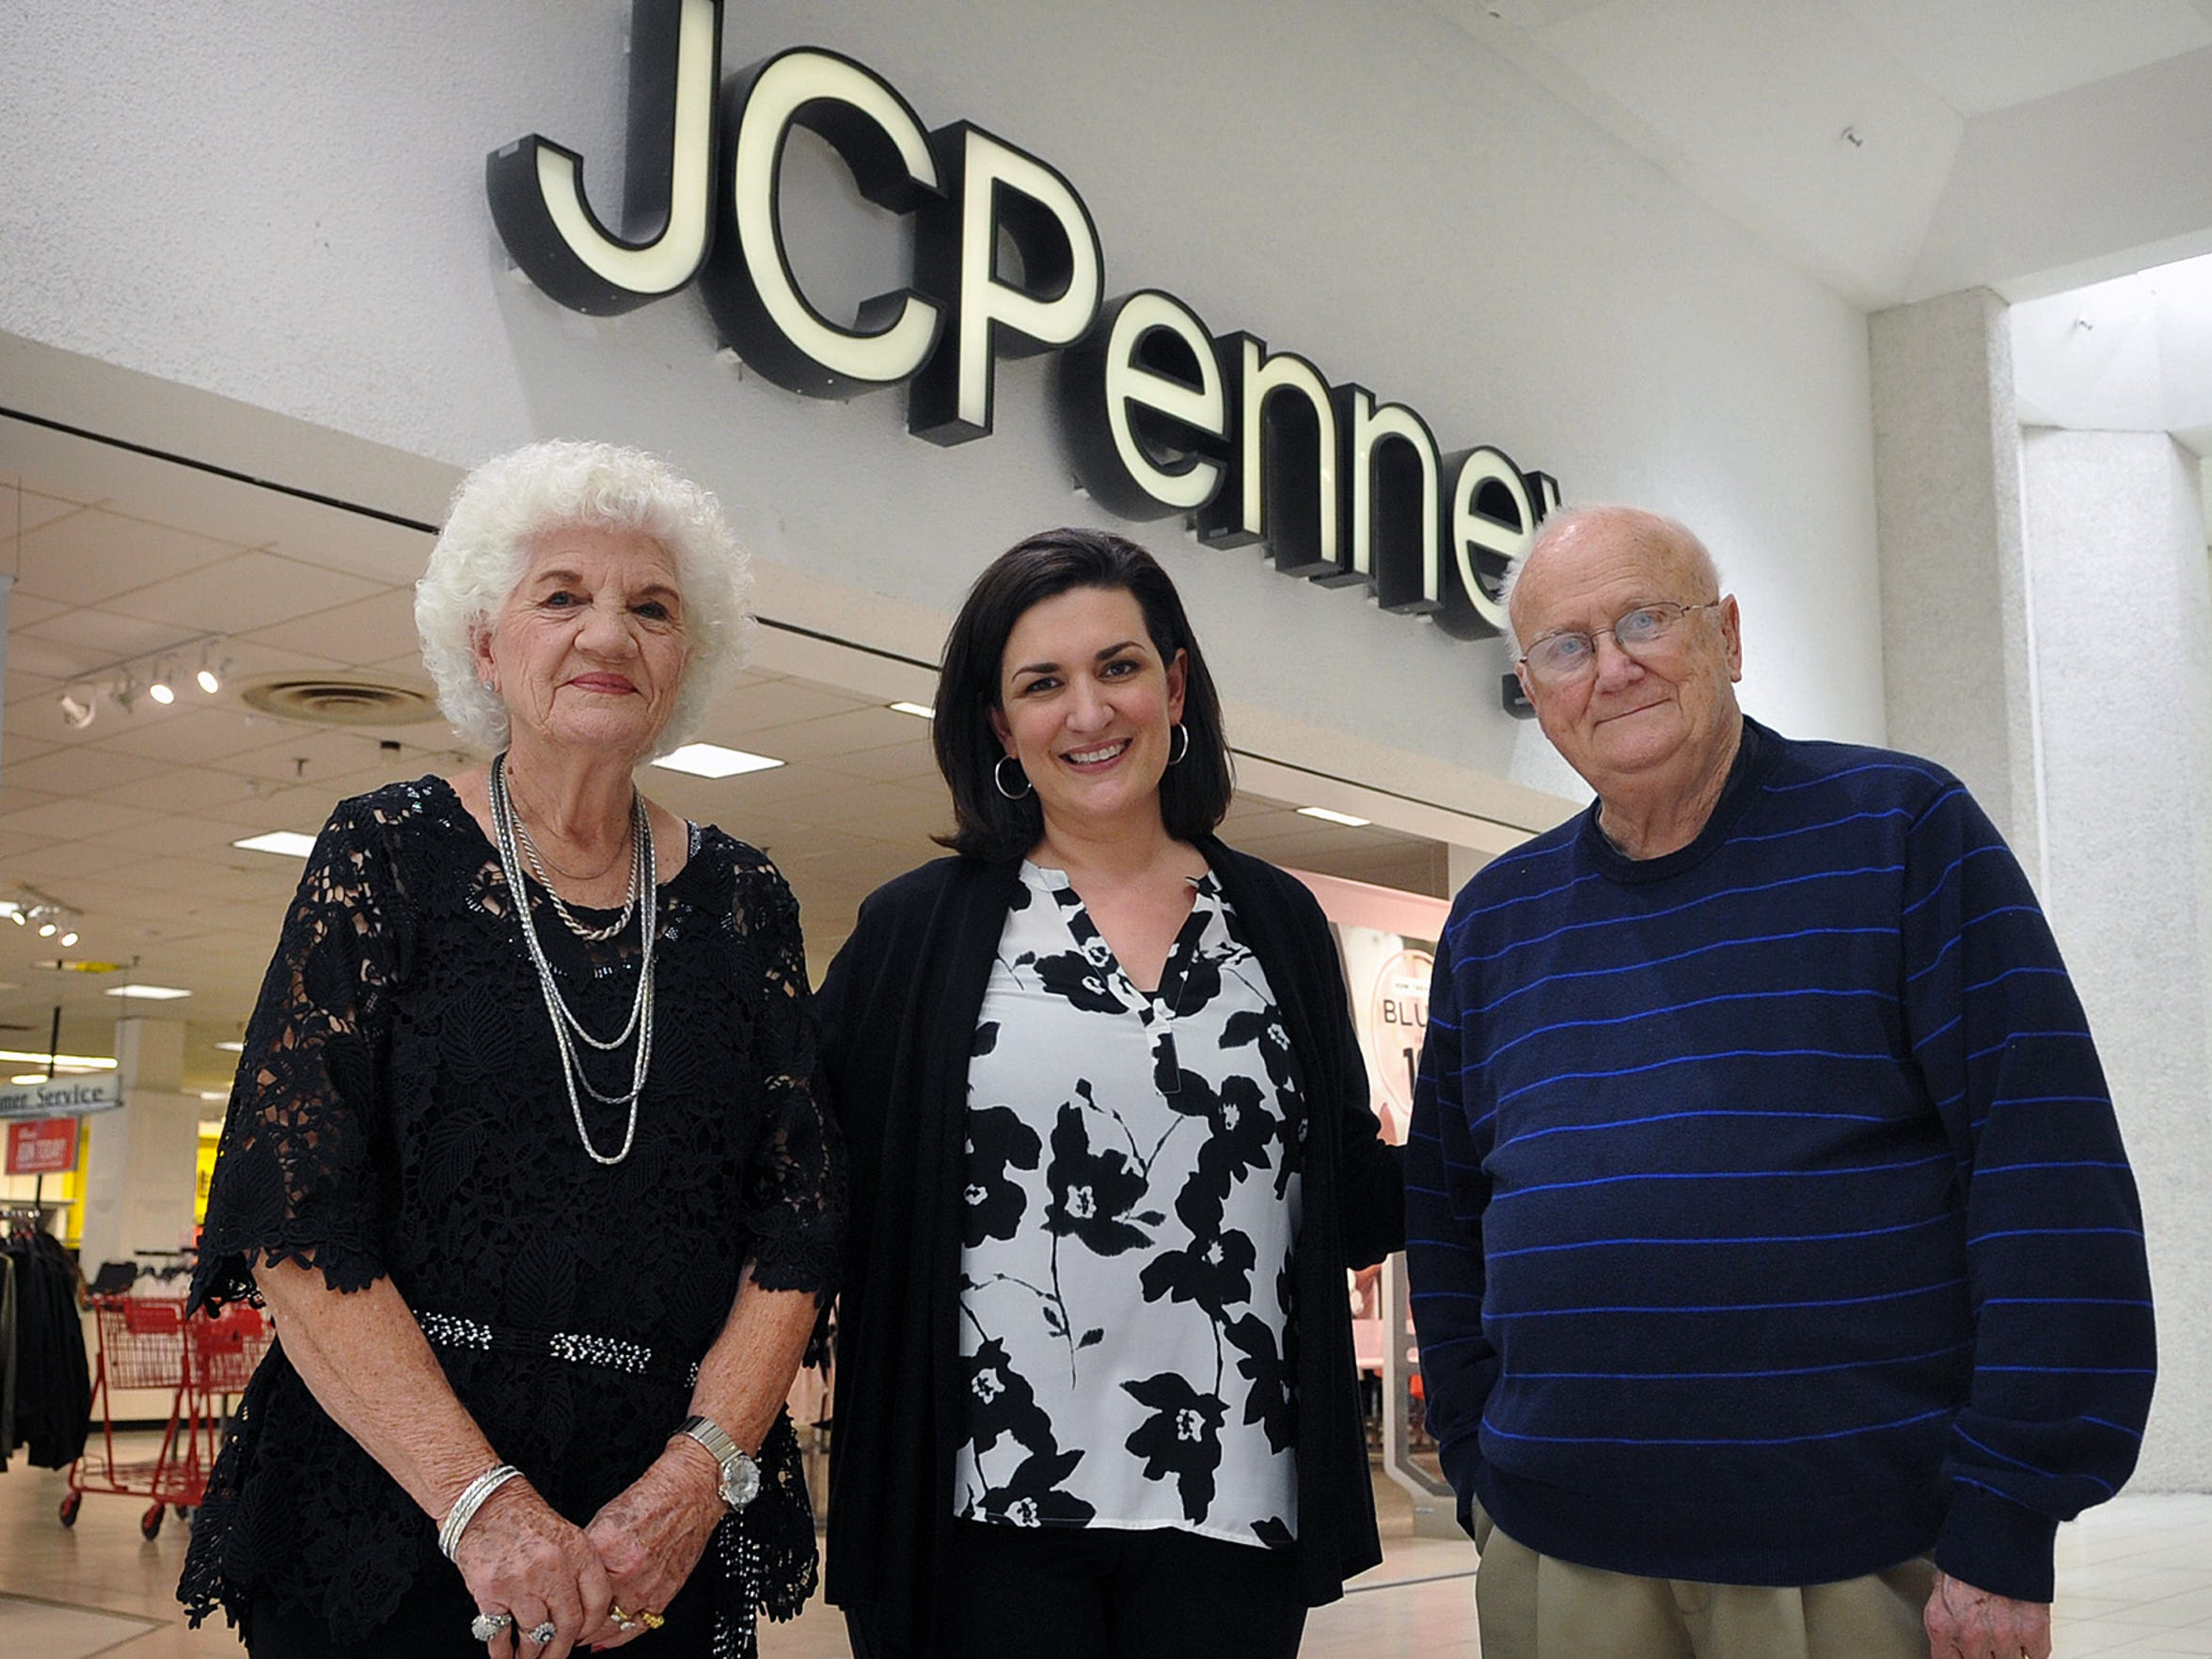 Kathleen Lauck, center, is the general manager of the JCPenney store and stands with James J. Miles who was the GM here for 16 of his 40 years with the company. Peggy Blankenship, left, worked for JCP since 1969, starting at the downtown location on Indiana and hired Lauck more than 25 years ago. JCP is marking 100 years in business in Wichita Falls.